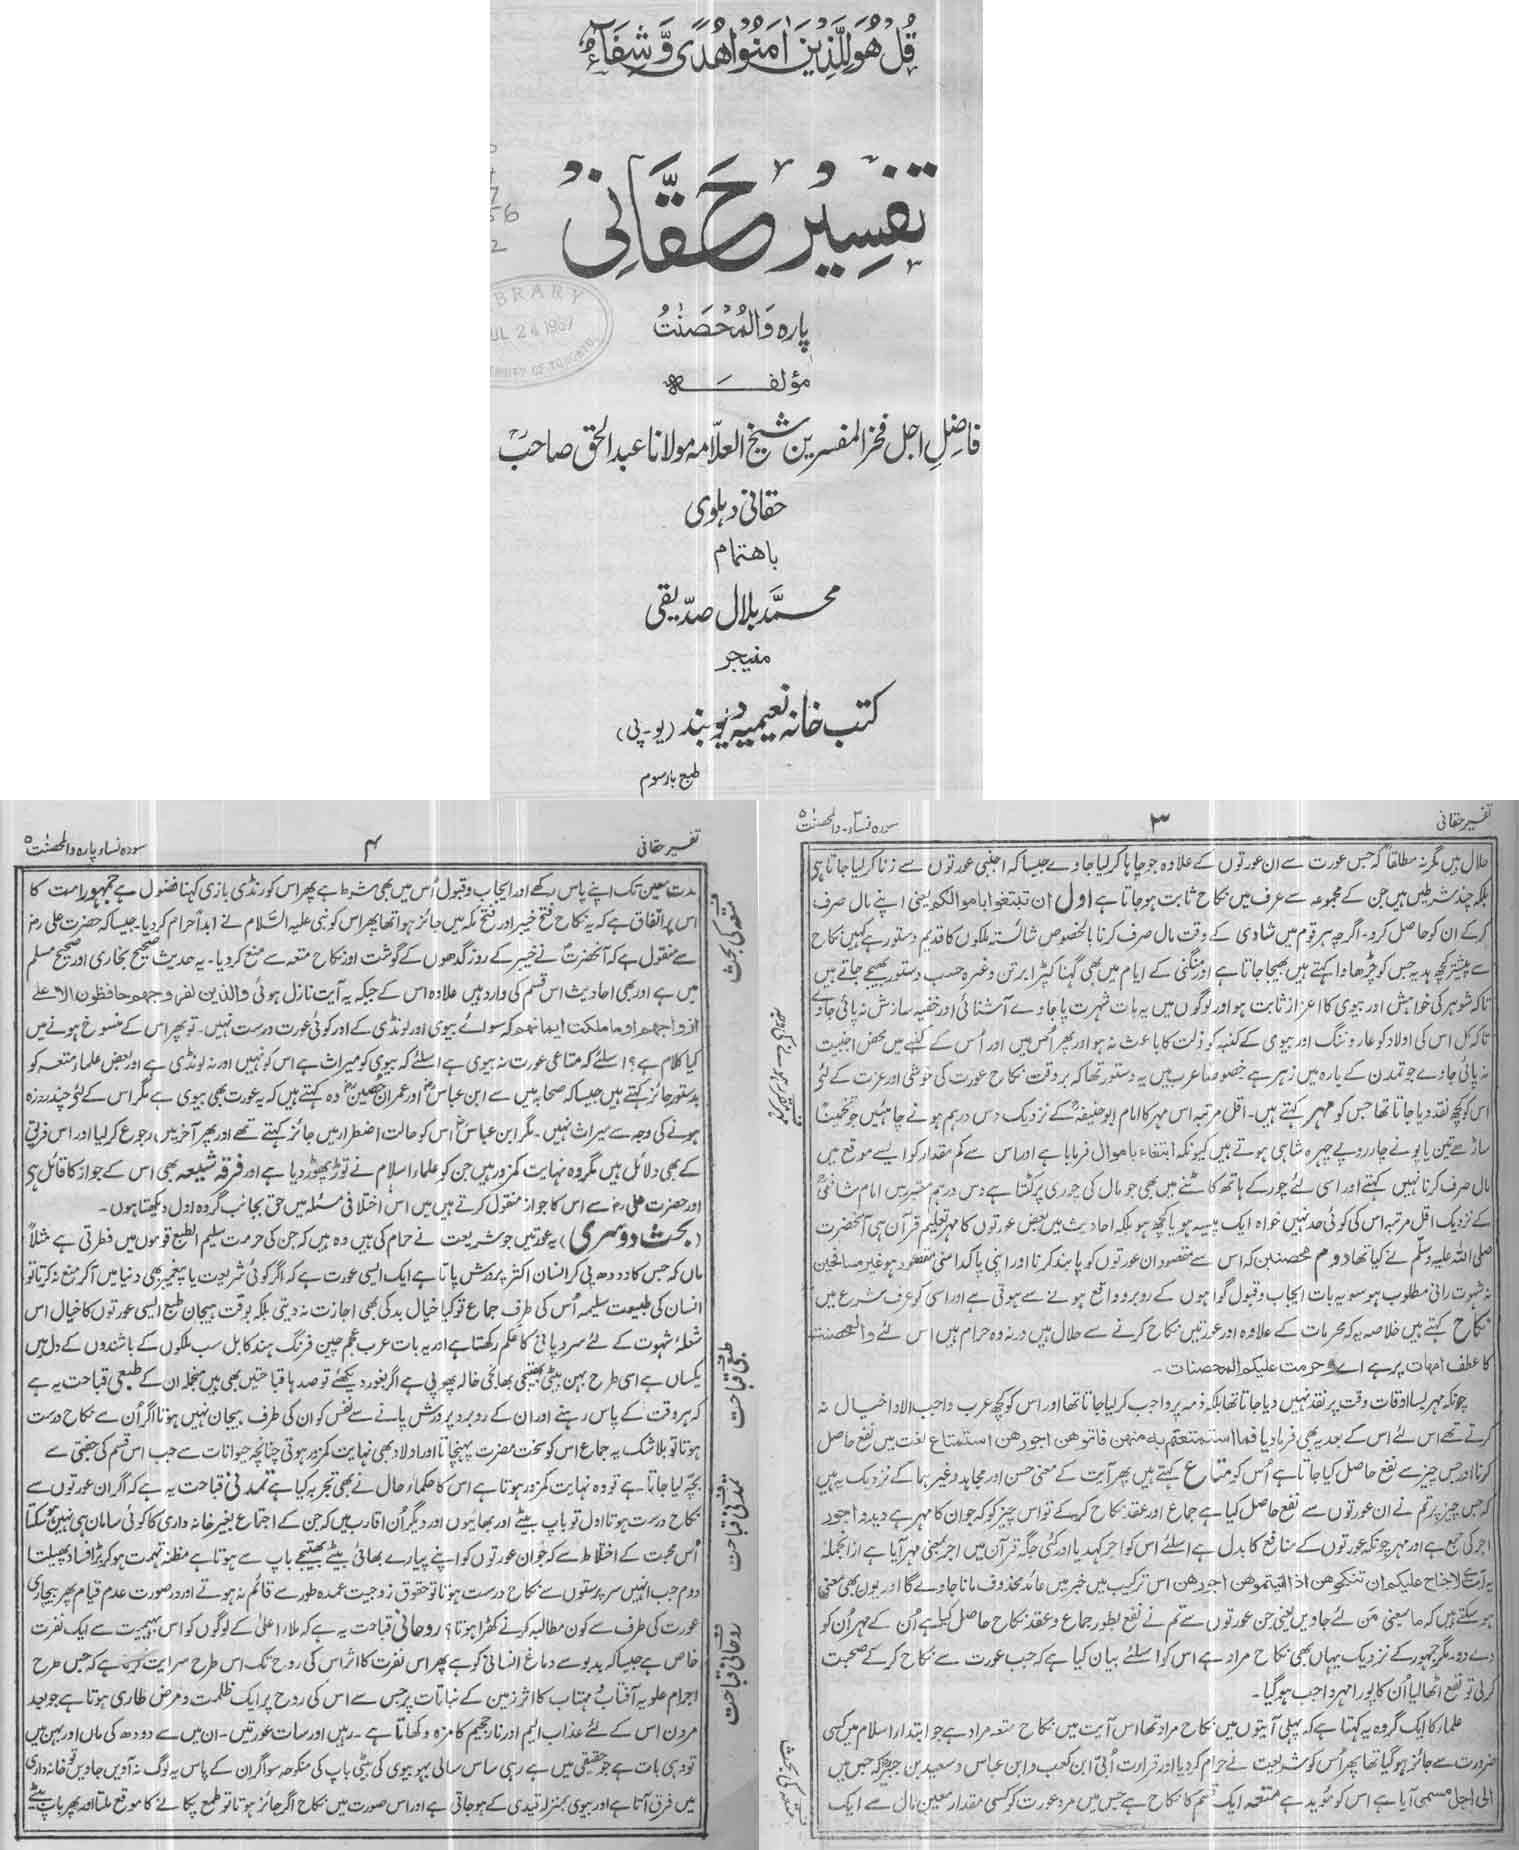 Quranic evidences for the legitimacy of Mut'ah